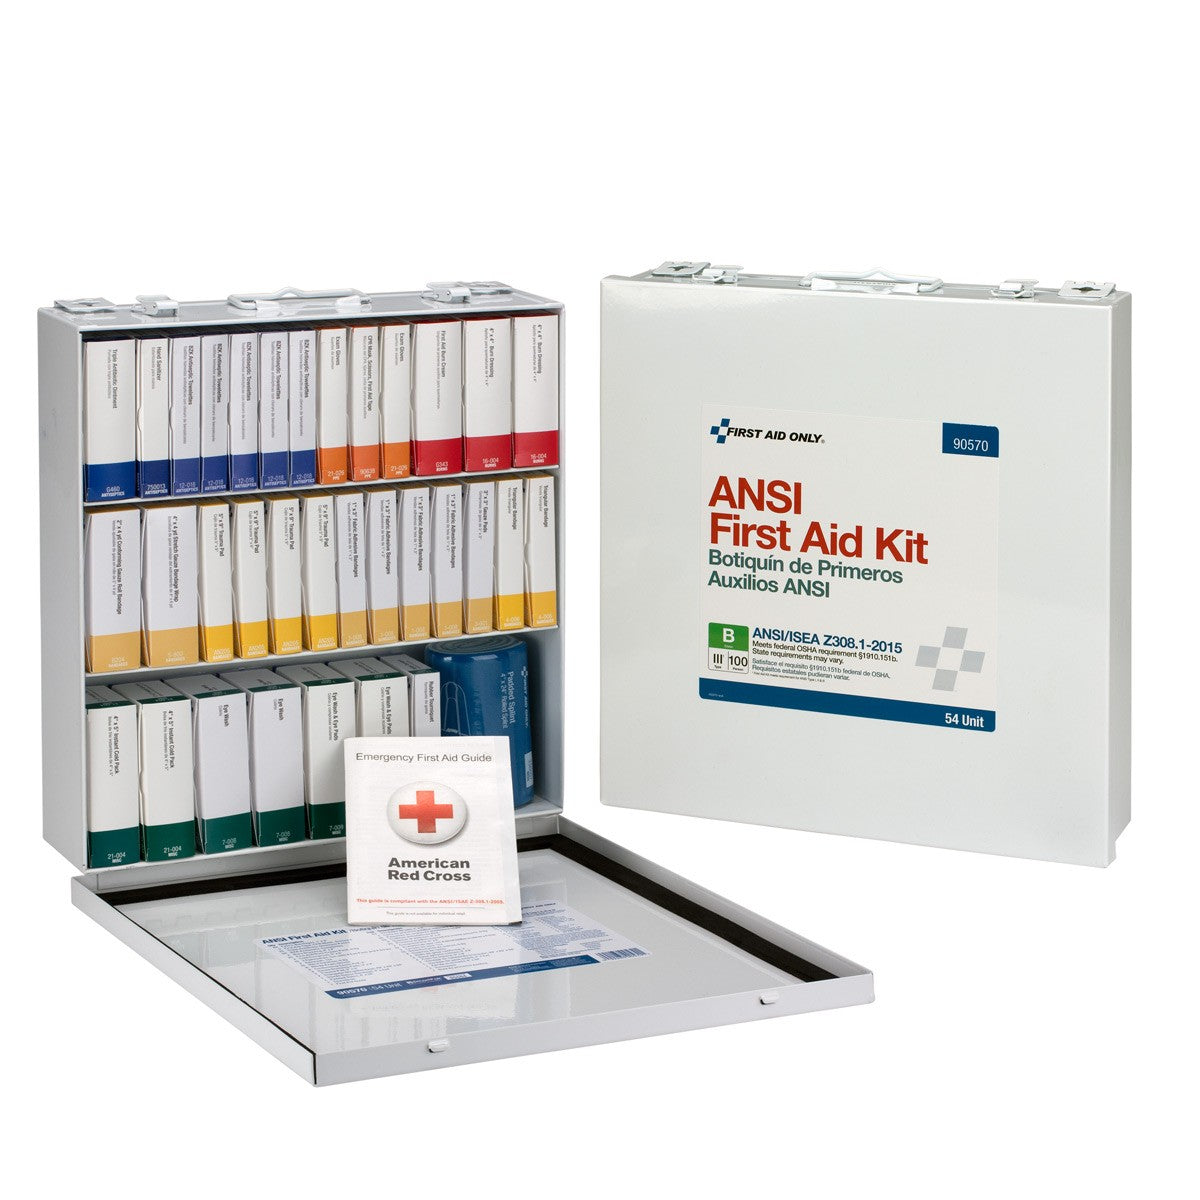 100 Person 54 Unit First Aid Kit, ANSI B, Weatherproof Steel Case, Type III - BS-FAK-90570-1-FM